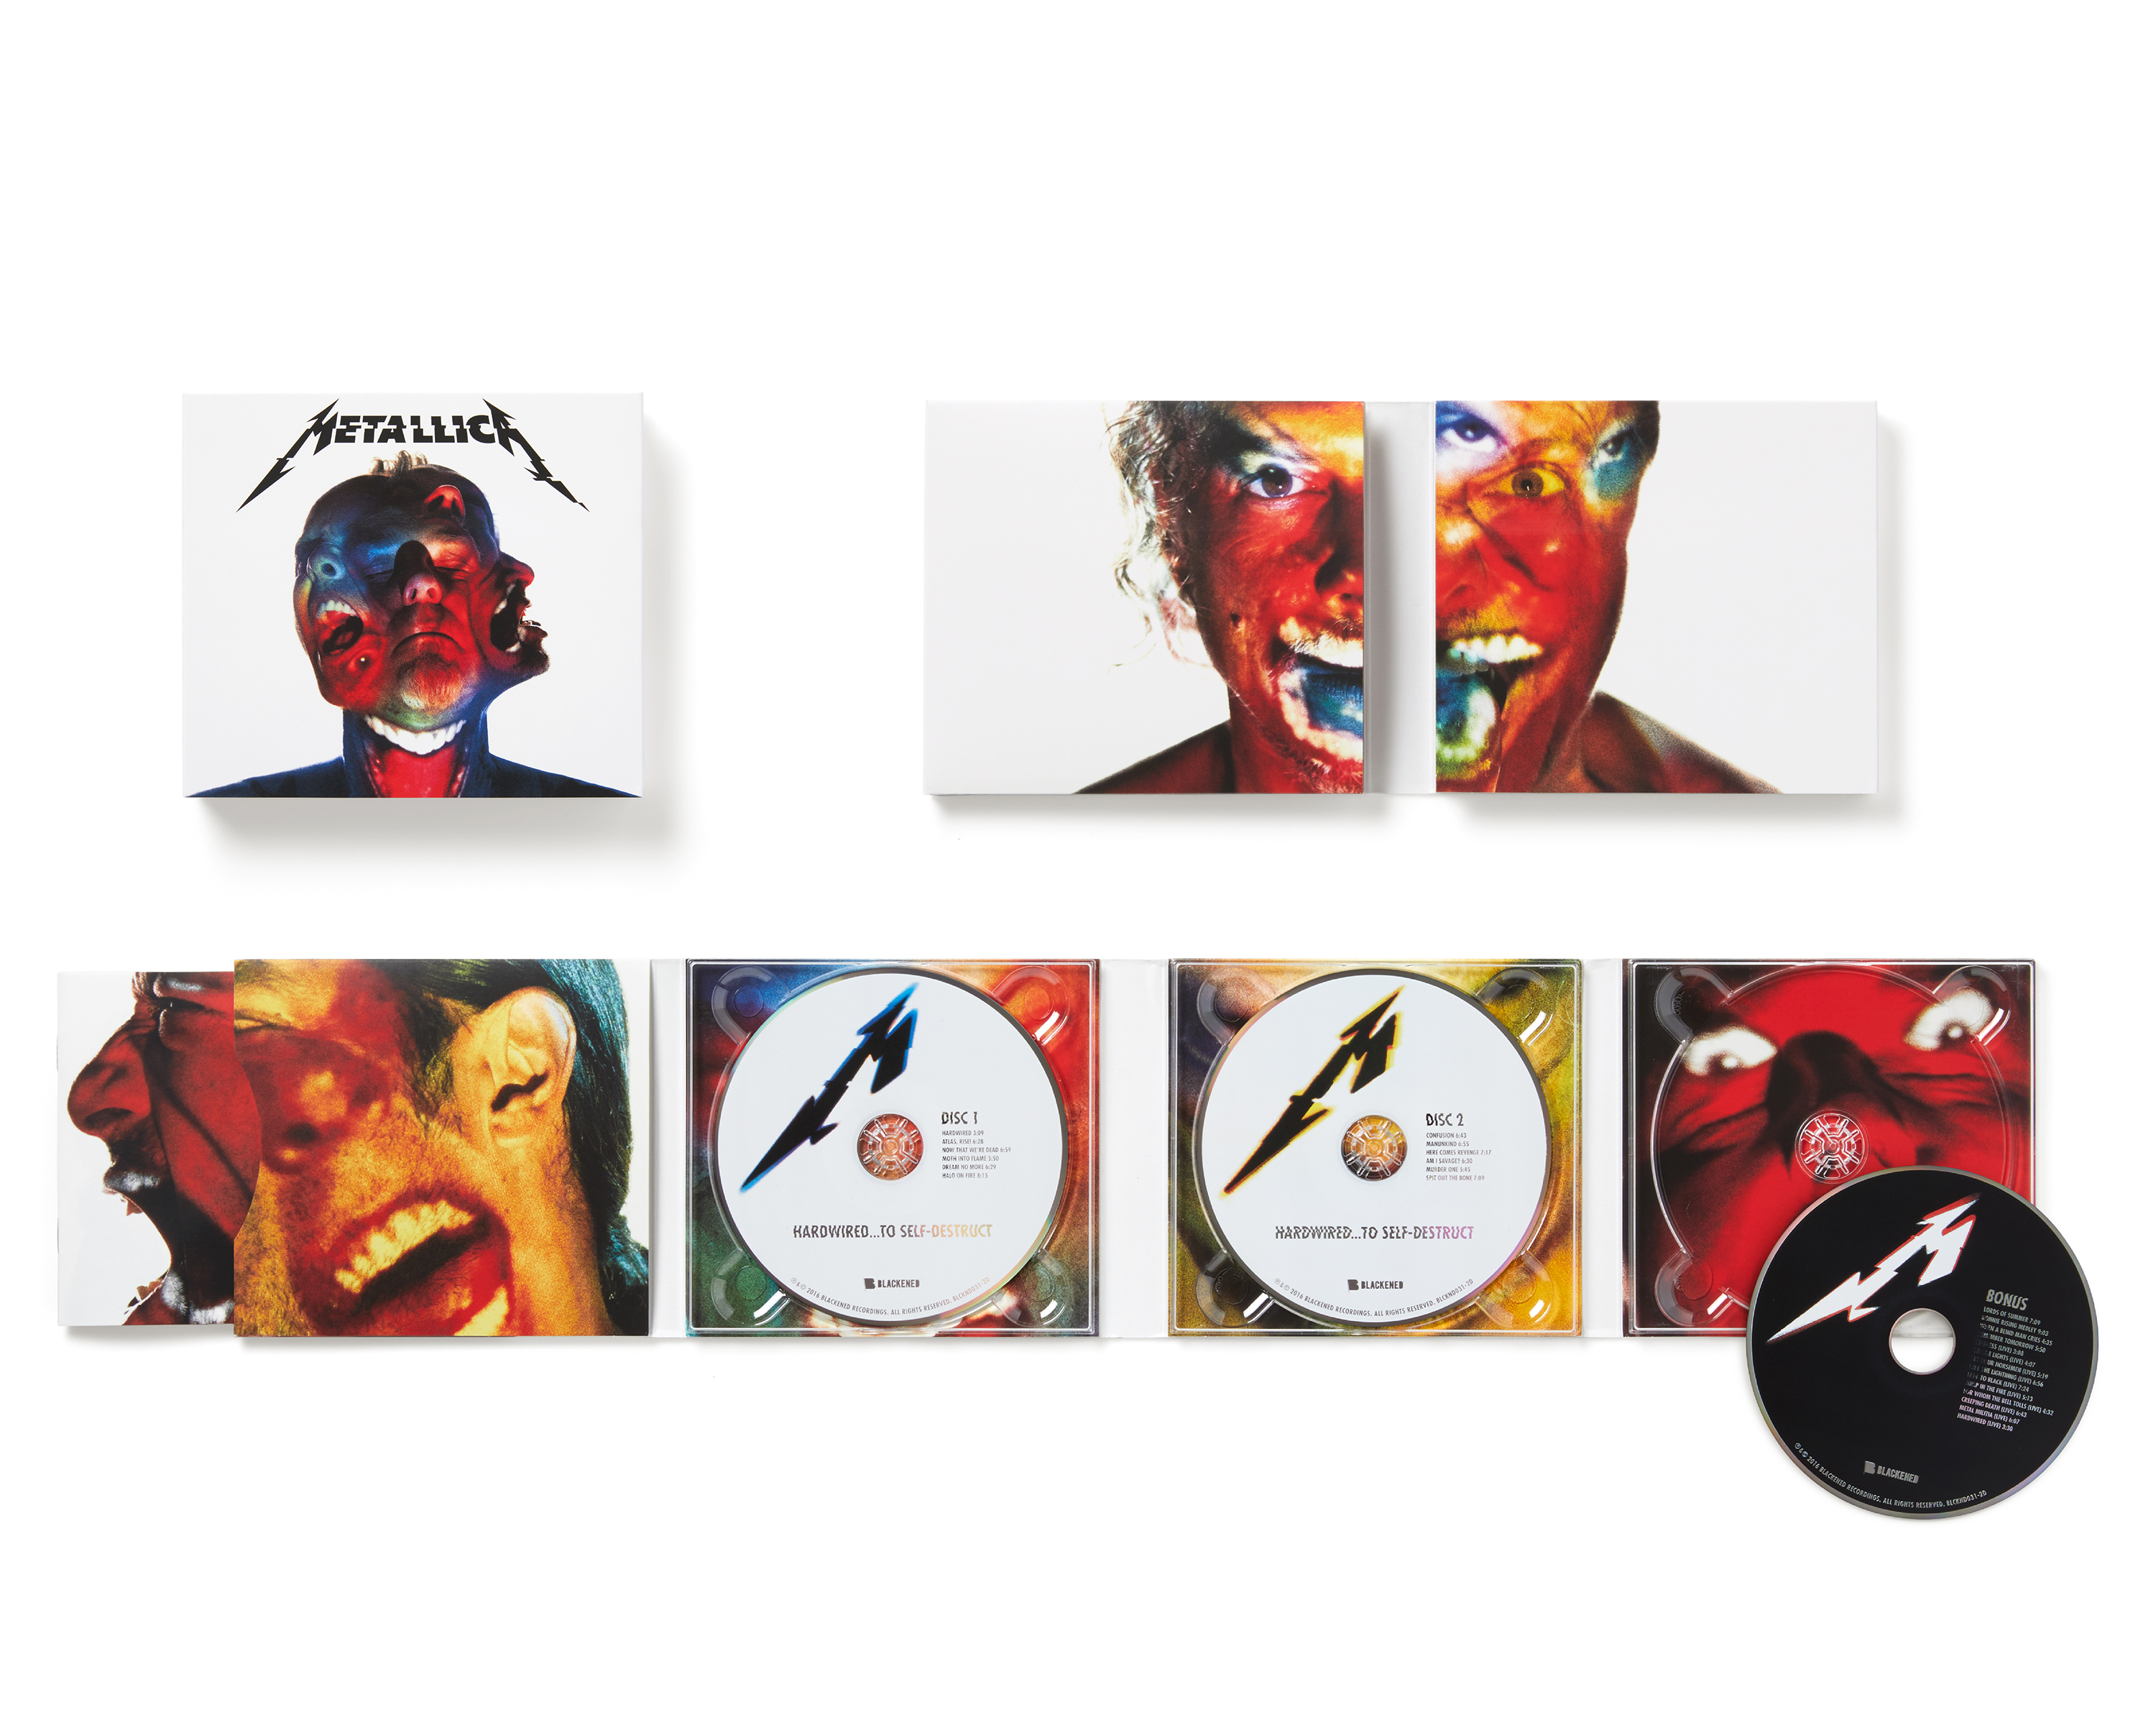 Image Media for Metallica Hardwired... to Self-Destruct album design